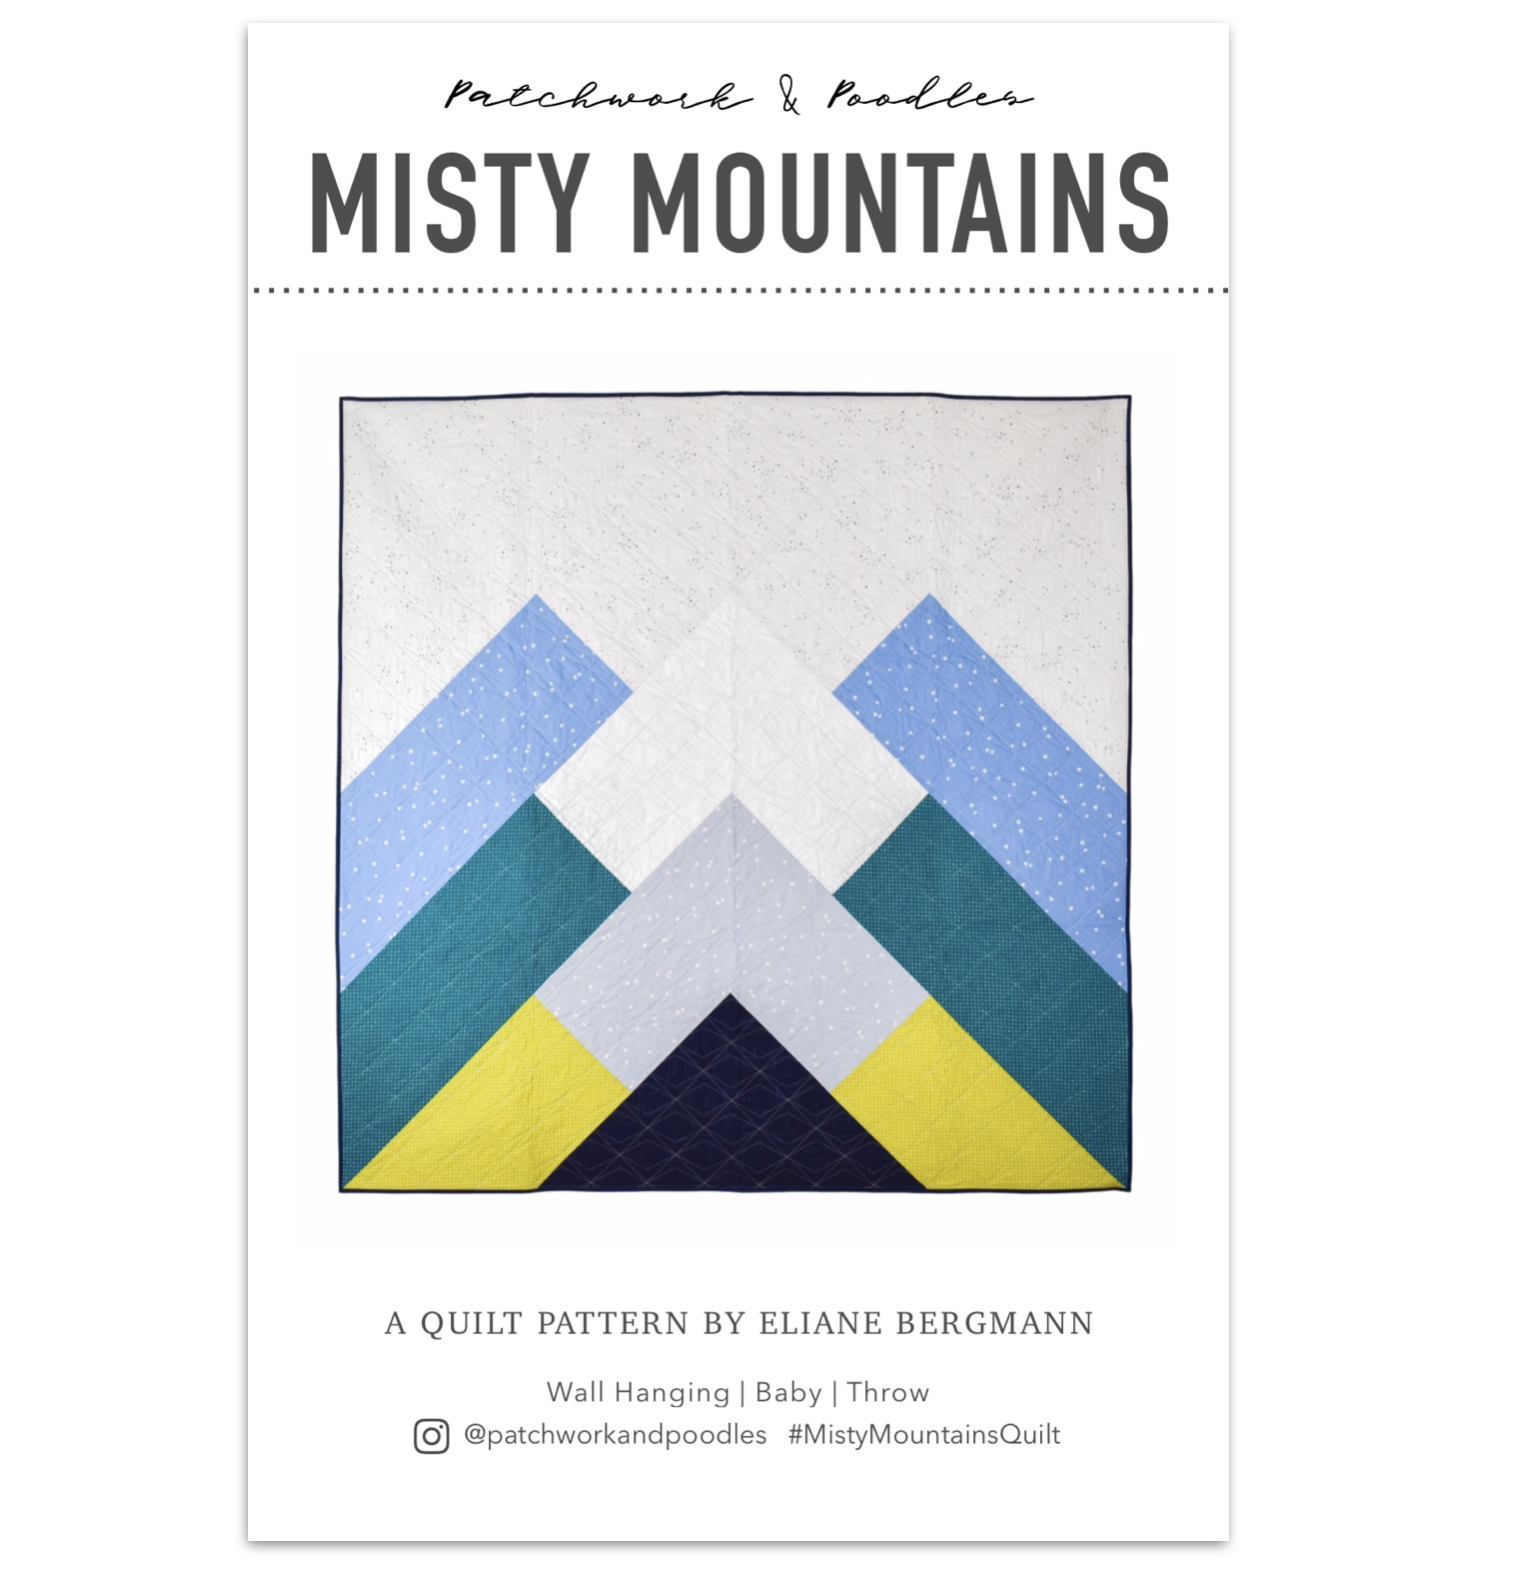 Misty Mountains Paper Patchwork And Poodles